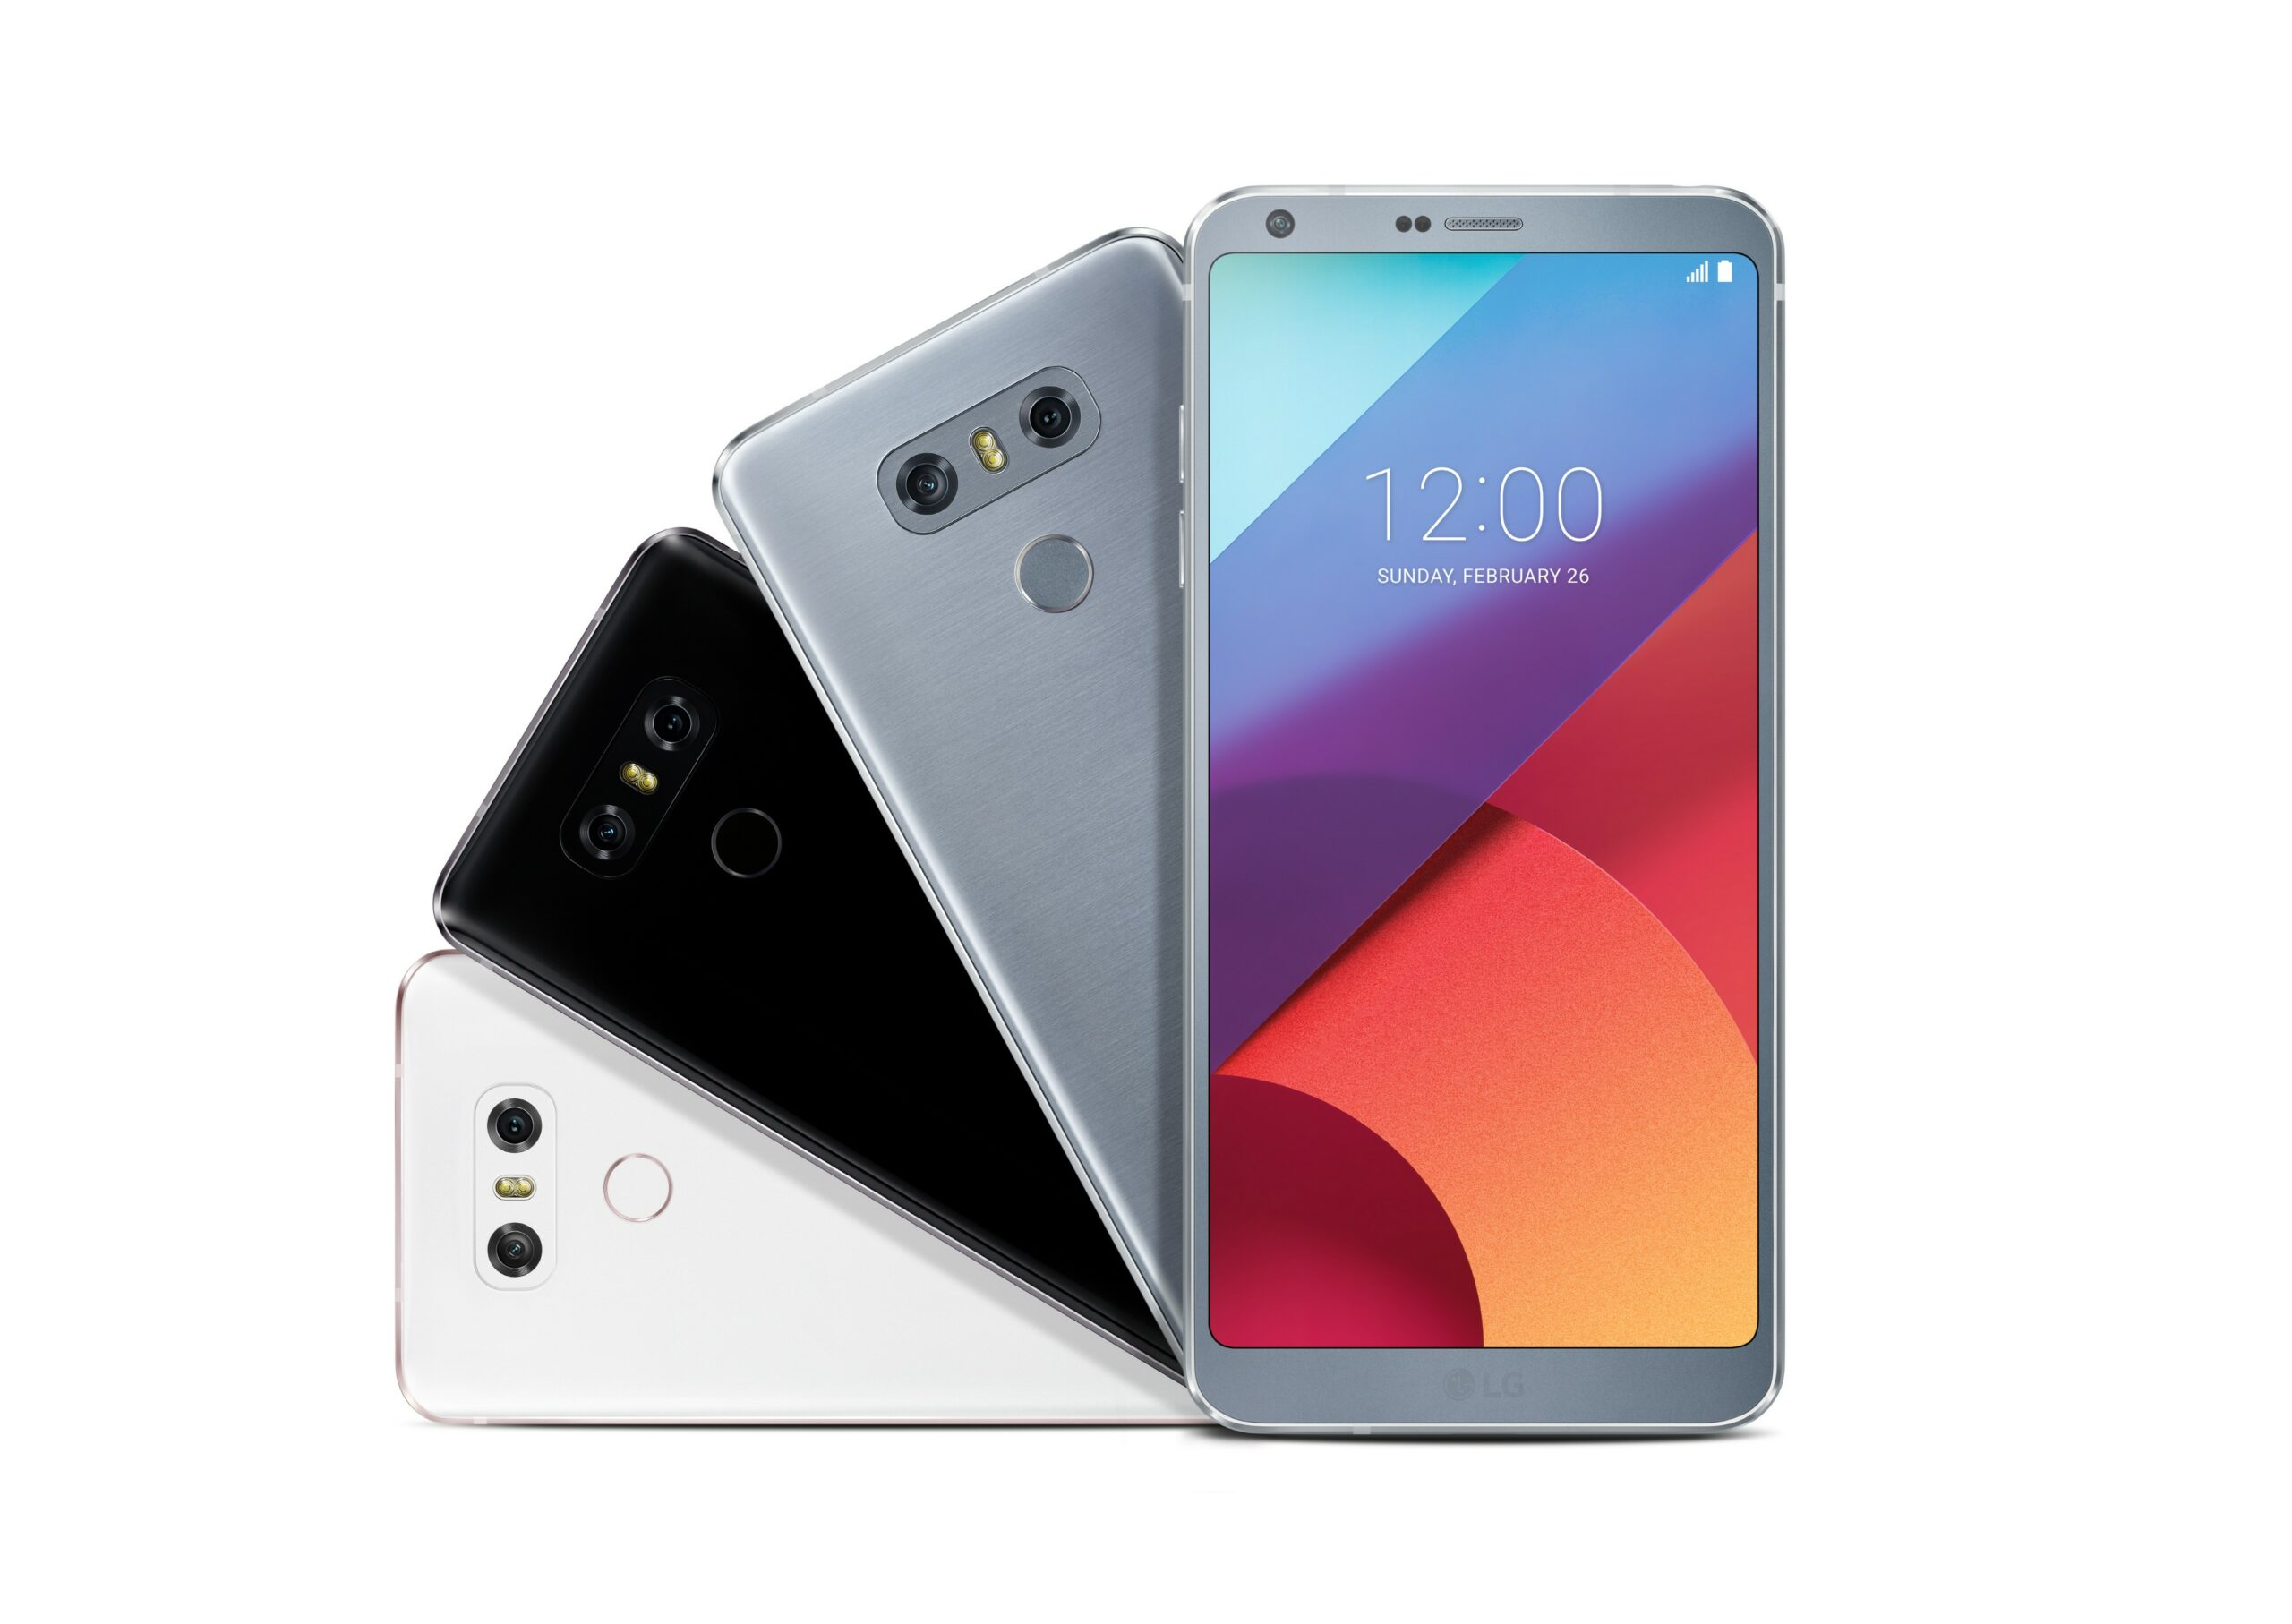 LG G6 likely to support facial recognition by June: Report